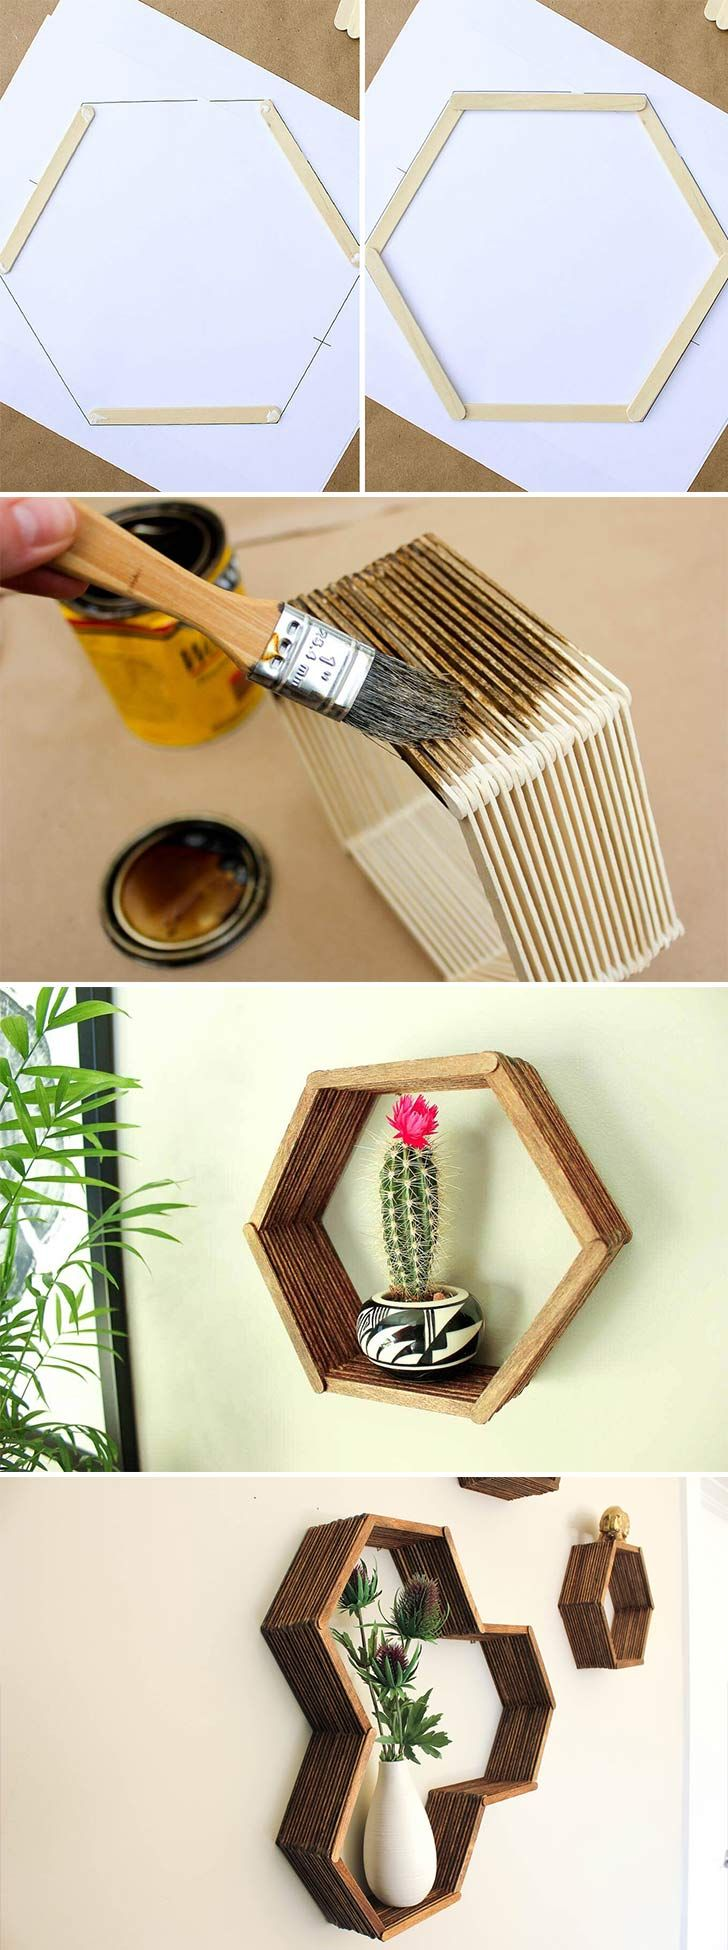 Pinterest diy home decorating projects